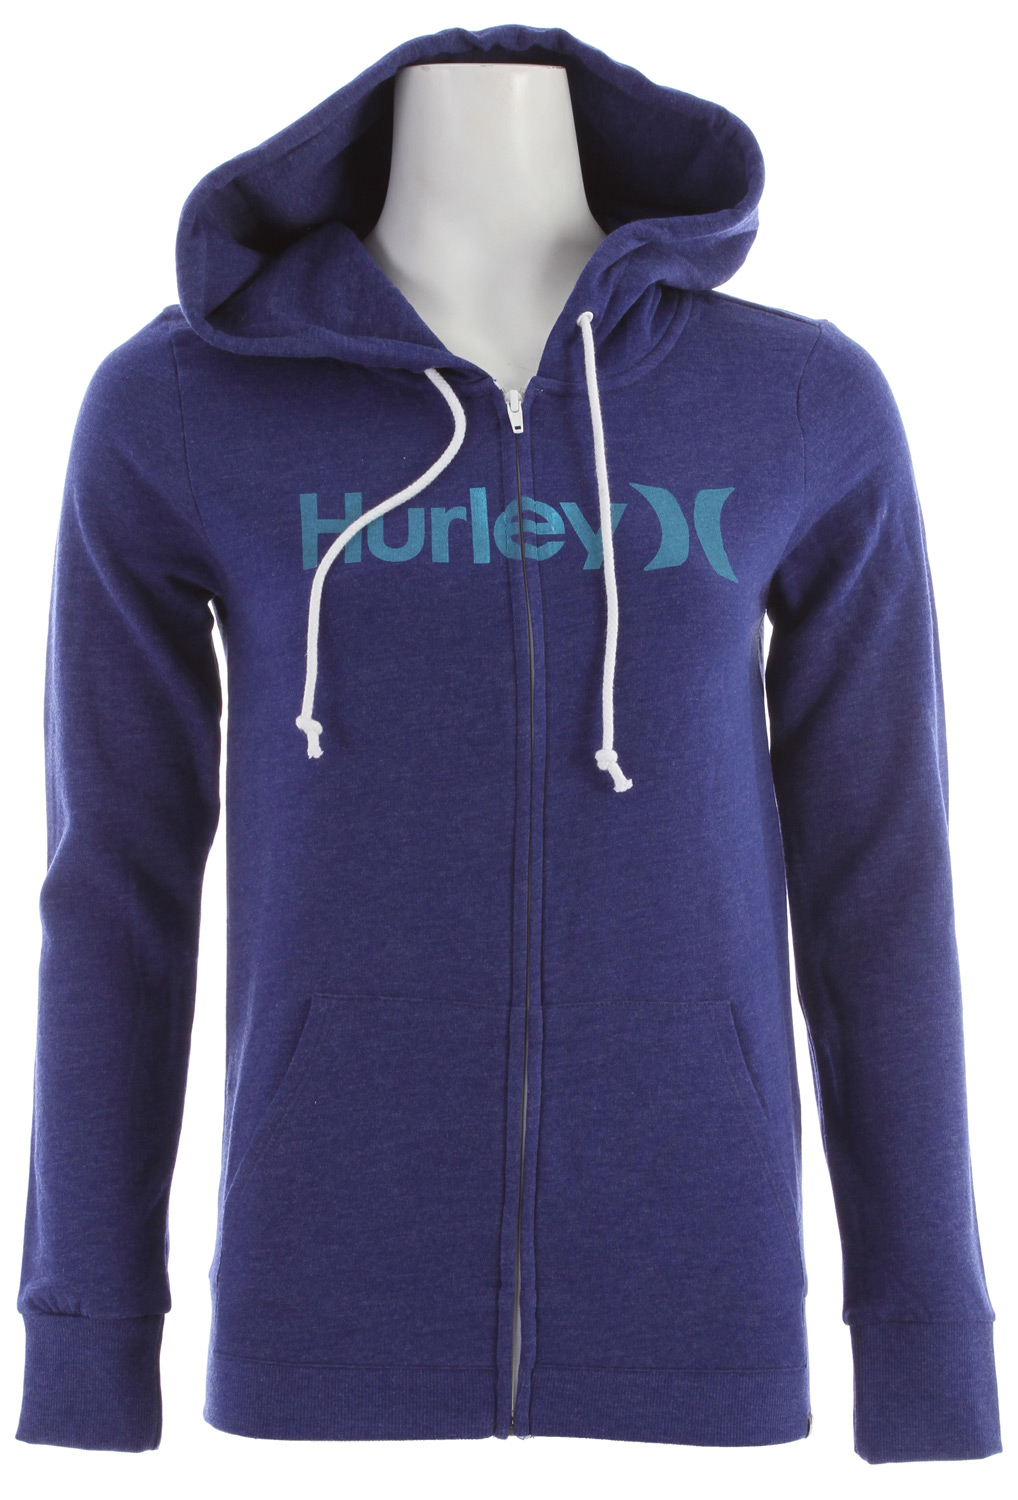 Surf Key Features of the Hurley One & Only Slim Fleece Zip Hoodie: Cozy slim fleece zip hoodie with kissing zipper Fleece hood lined With discharge print and h icon clip label 60% cotton/40% polyester. - $31.95